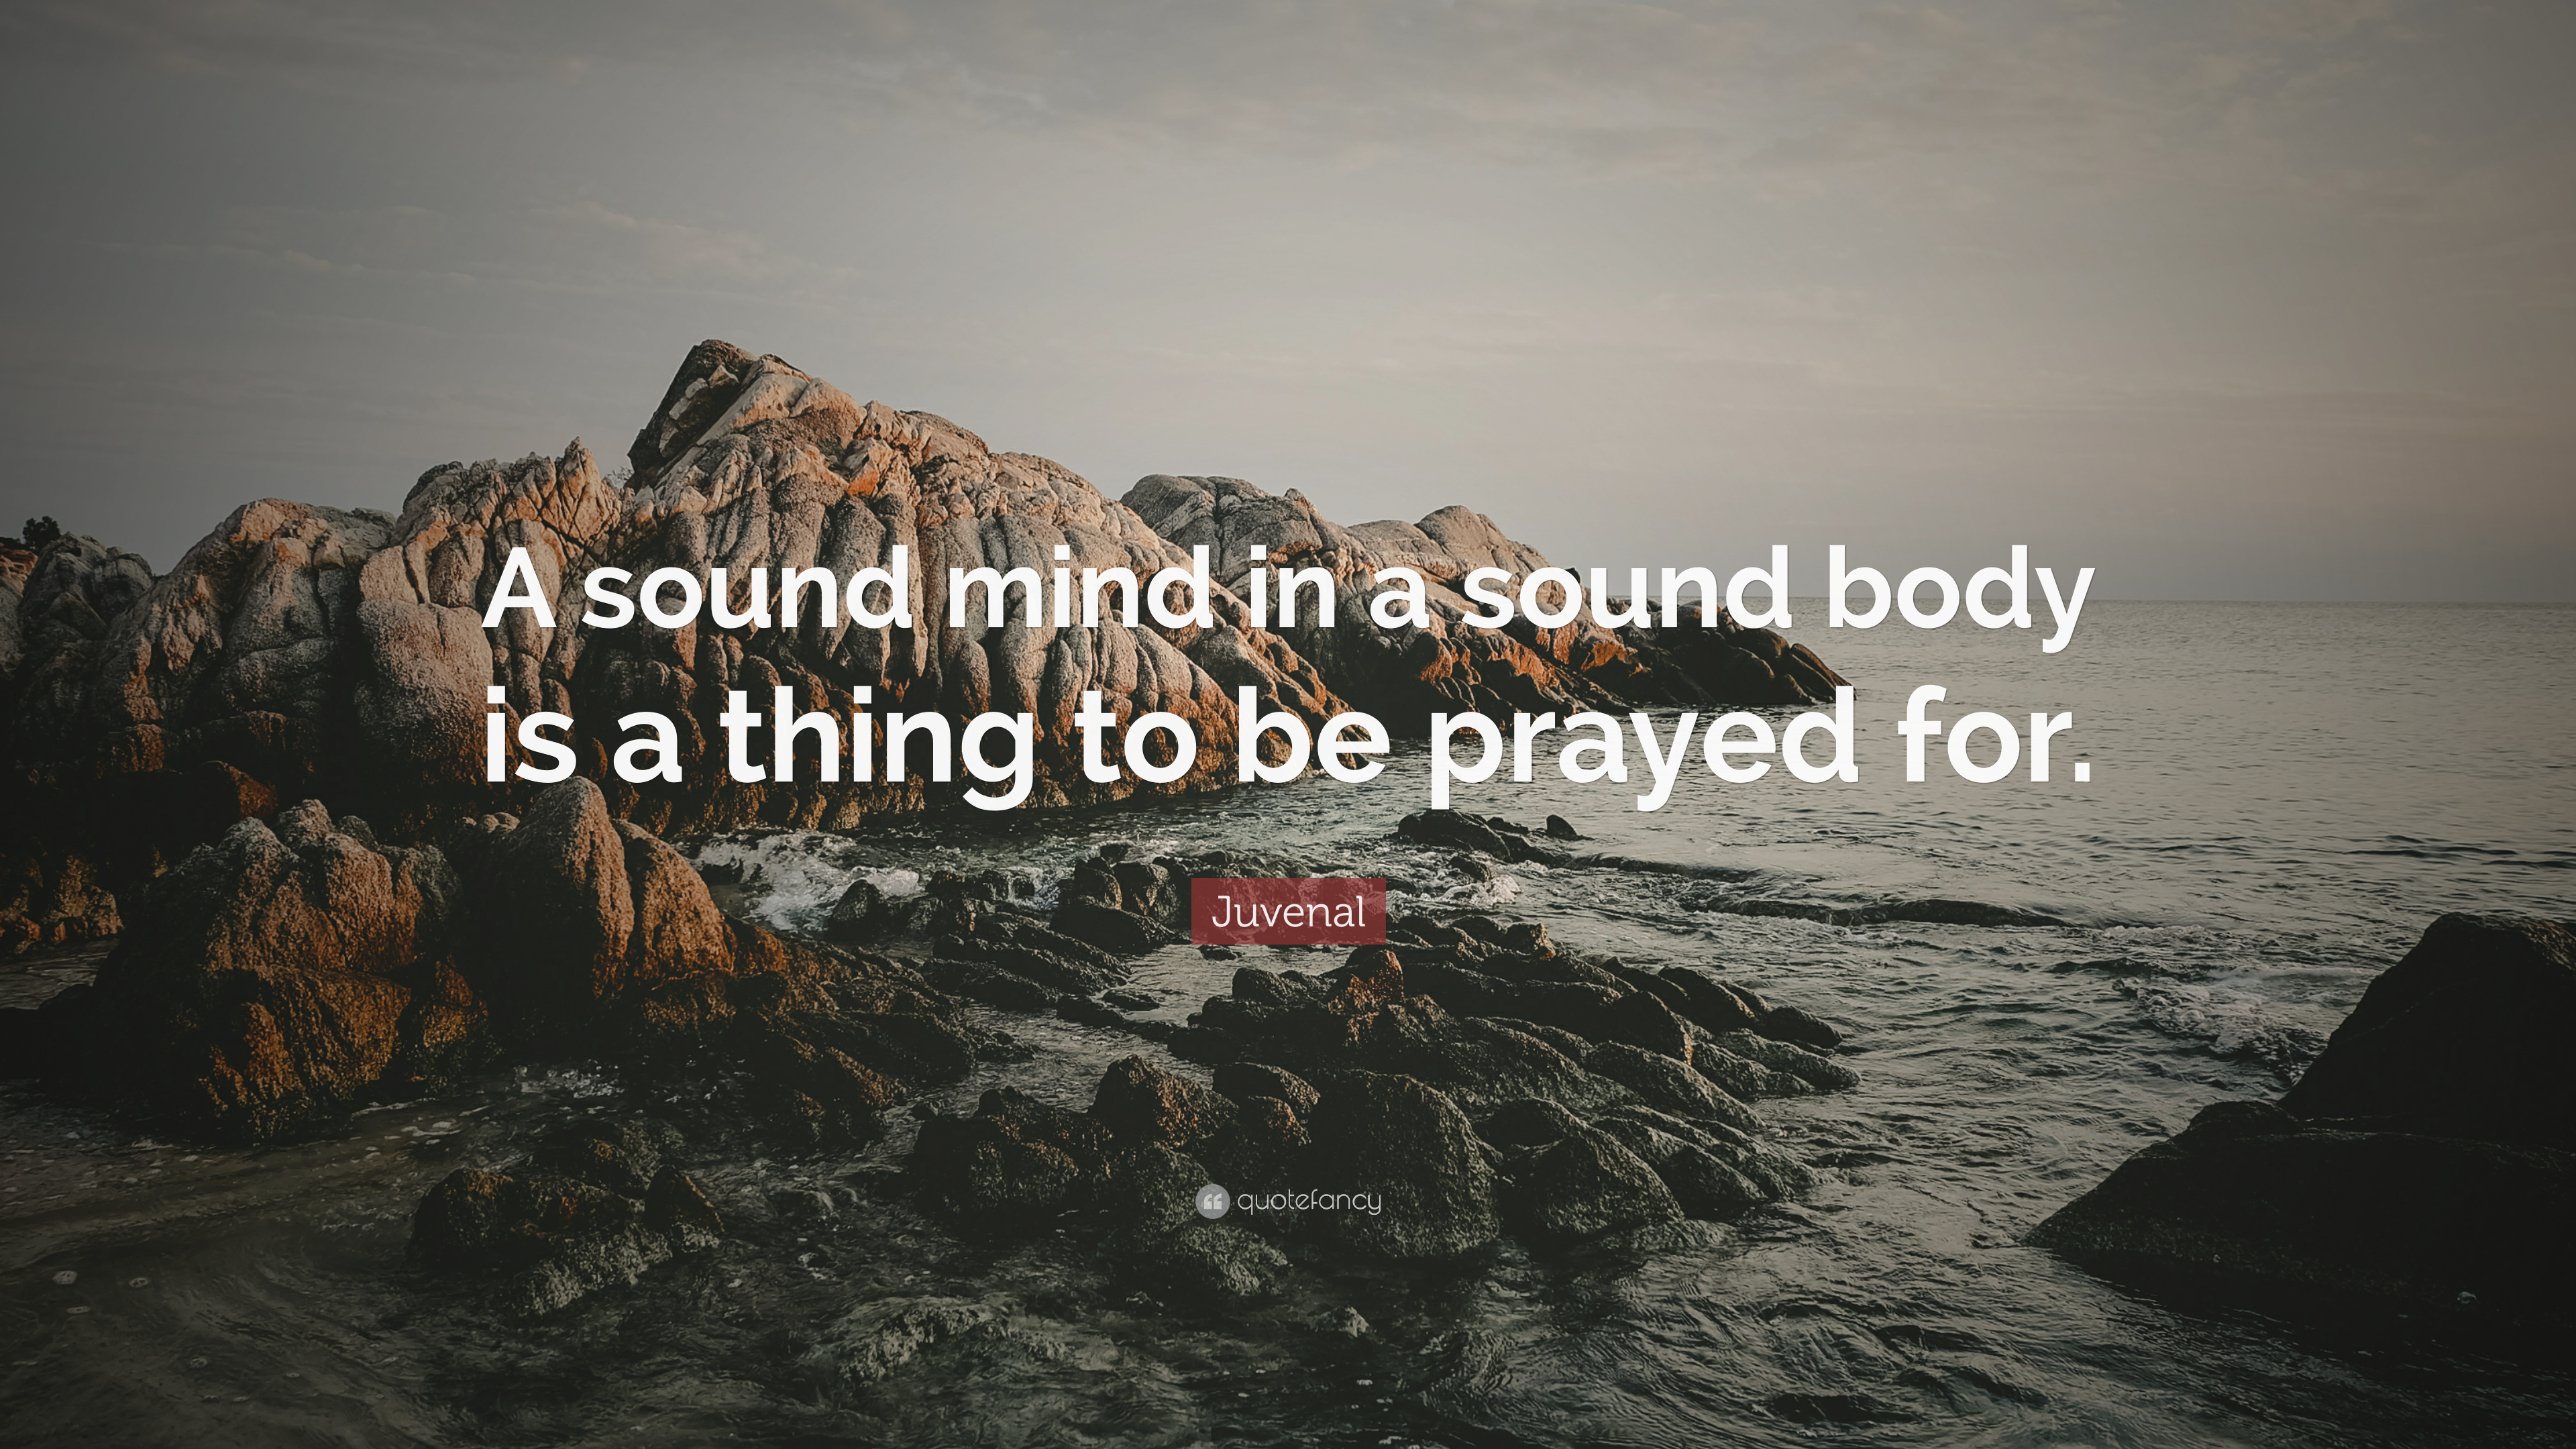 Beautiful Juvenal Quote: U201cA Sound Mind In A Sound Body Is A Thing To Be